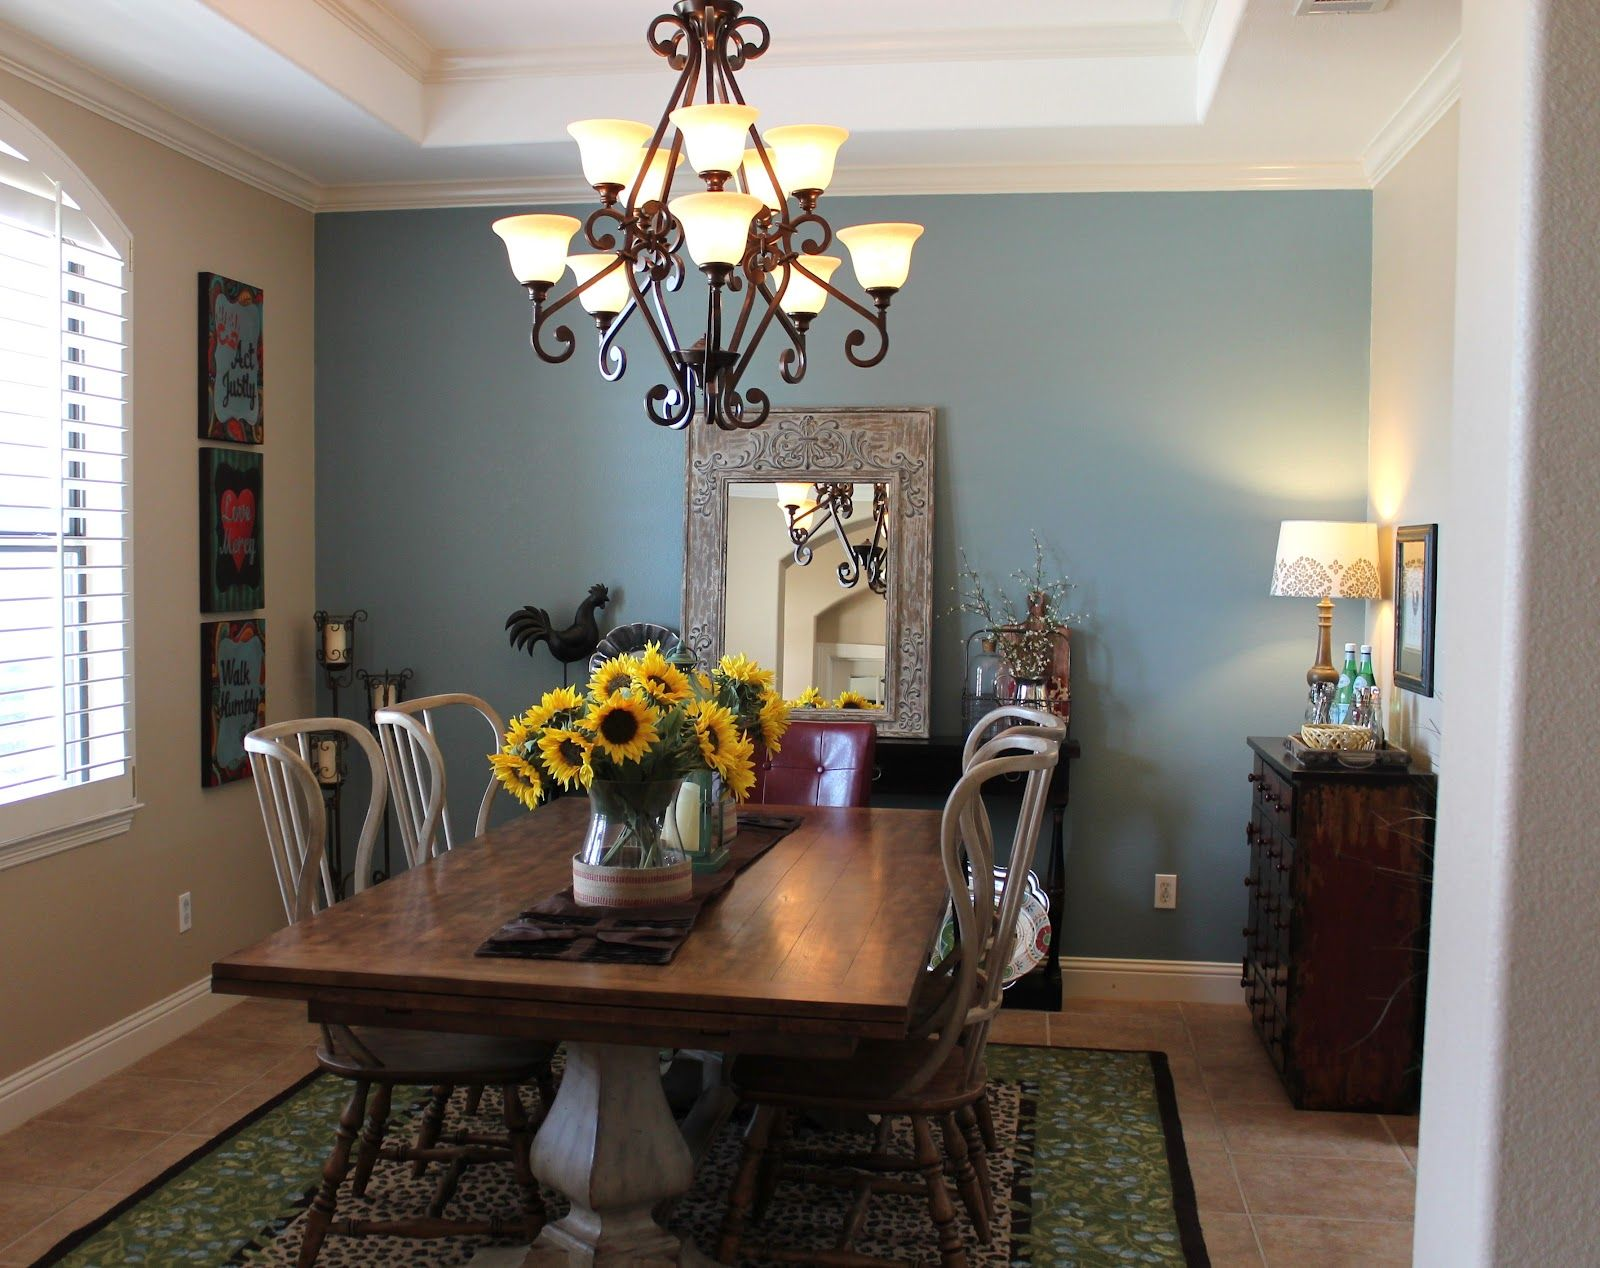 Light blue dining room - Furniturediningroomfavored10lightantiquediningchandelier Furniturediningroomfavored10lightantiquediningchandelier 15 Radiant Blue Dining Room